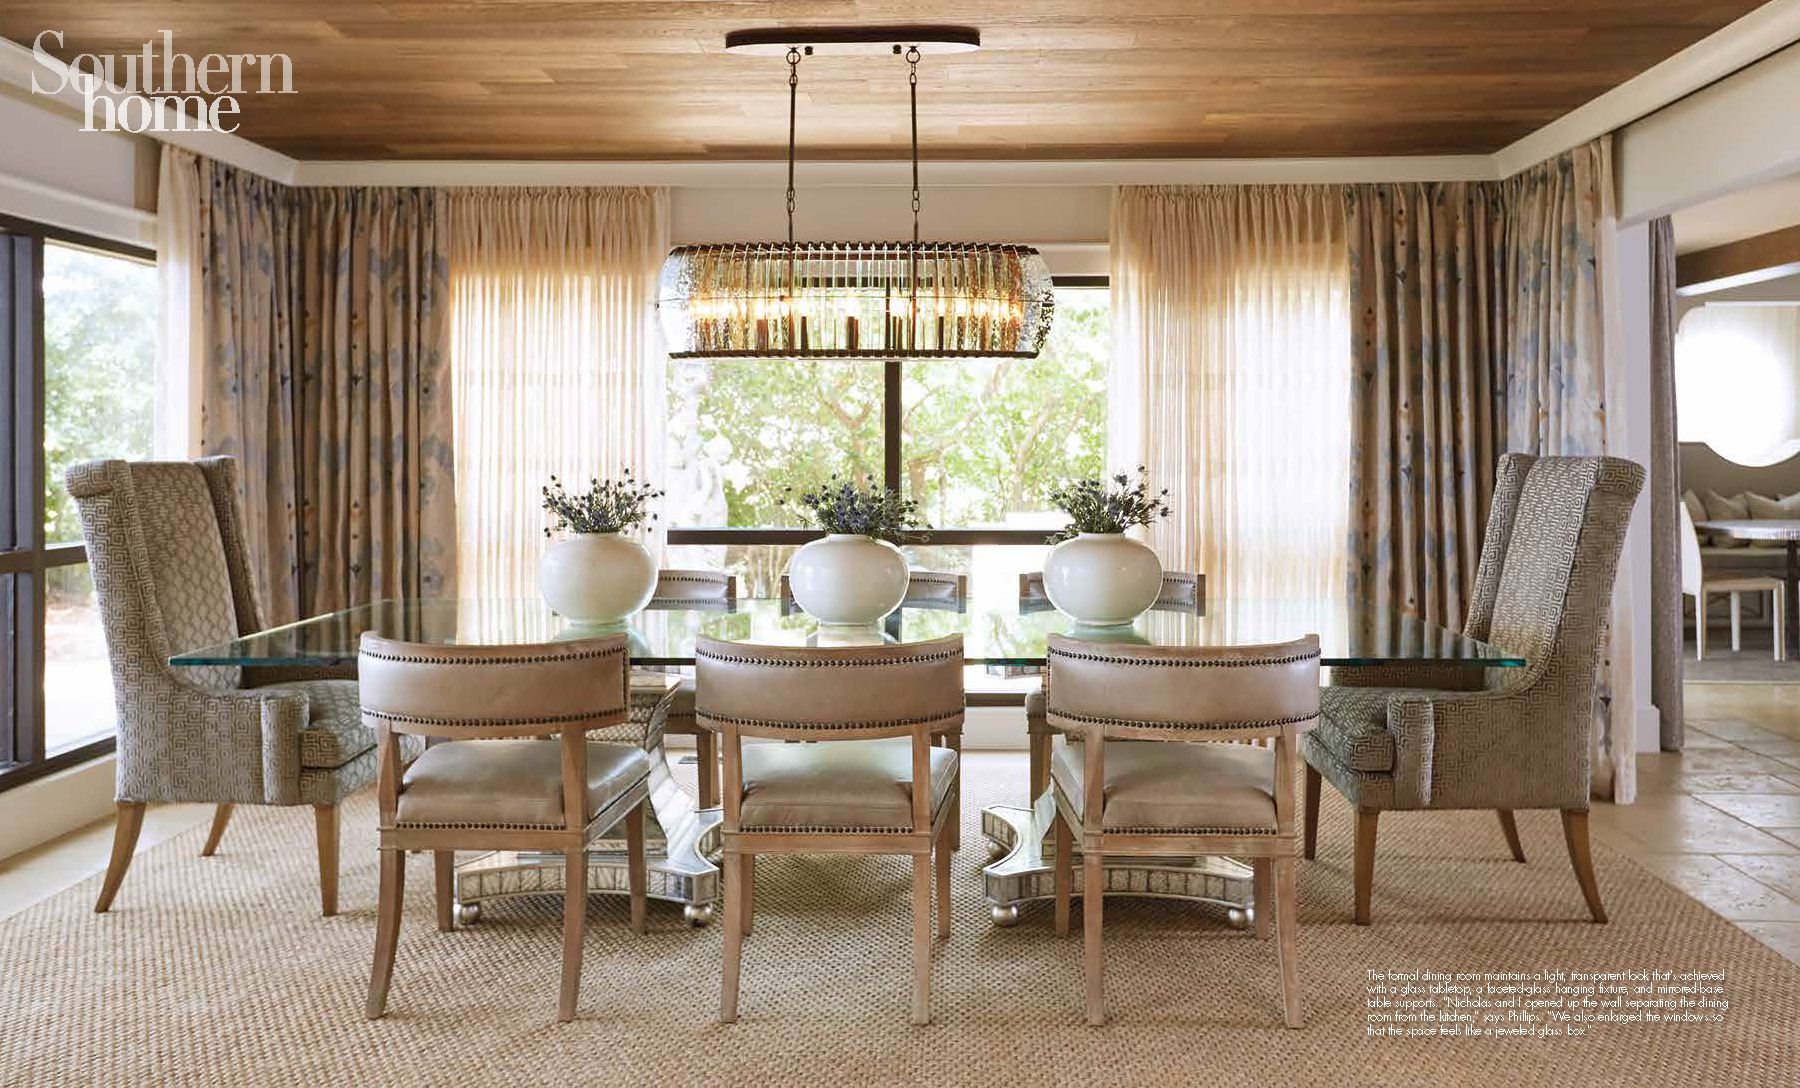 SouthernHome_Page_3.jpg